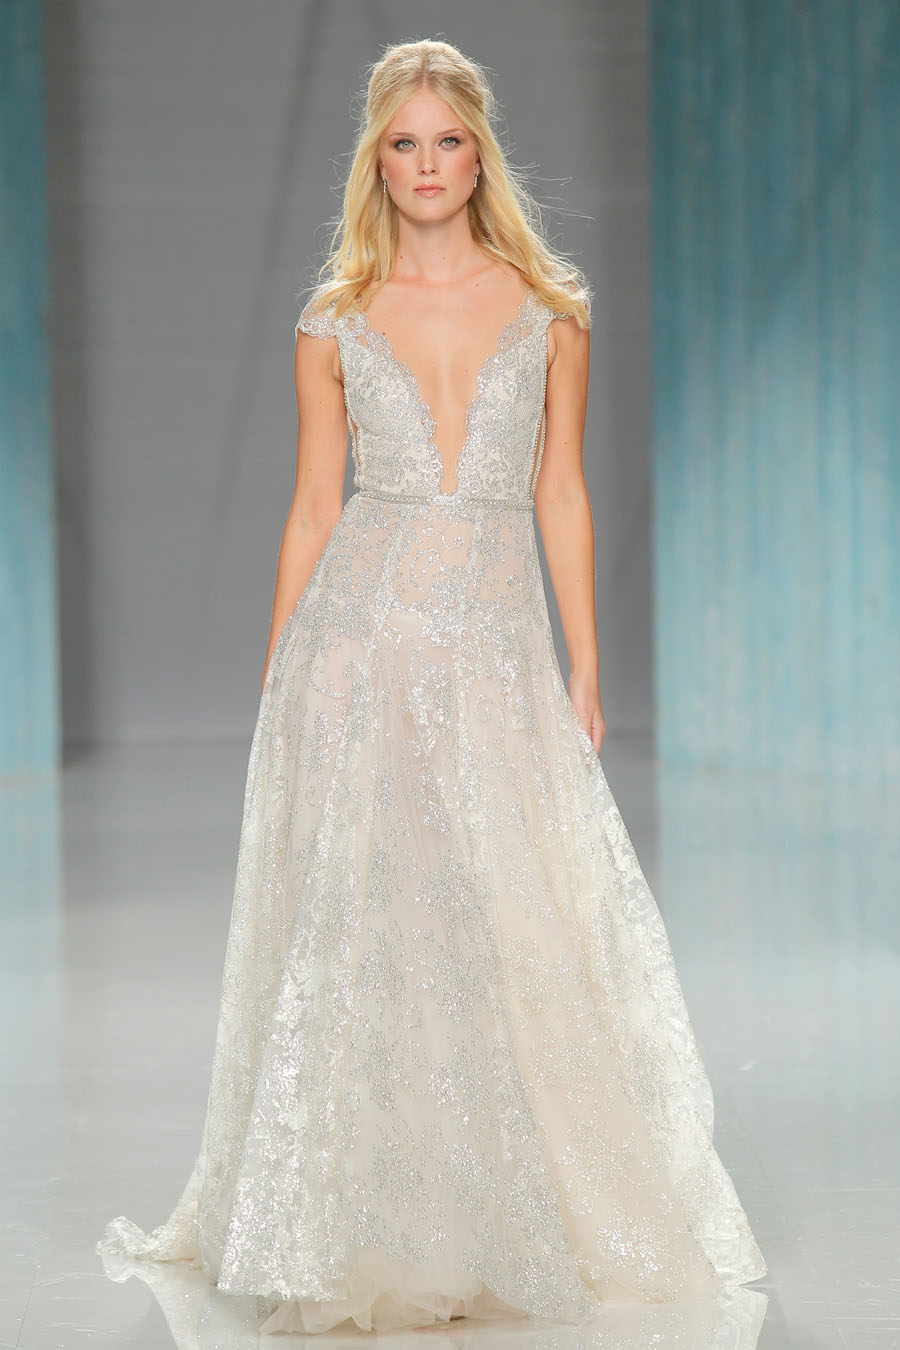 2017 GALA Bridal Gown Collection from Galia Lahav